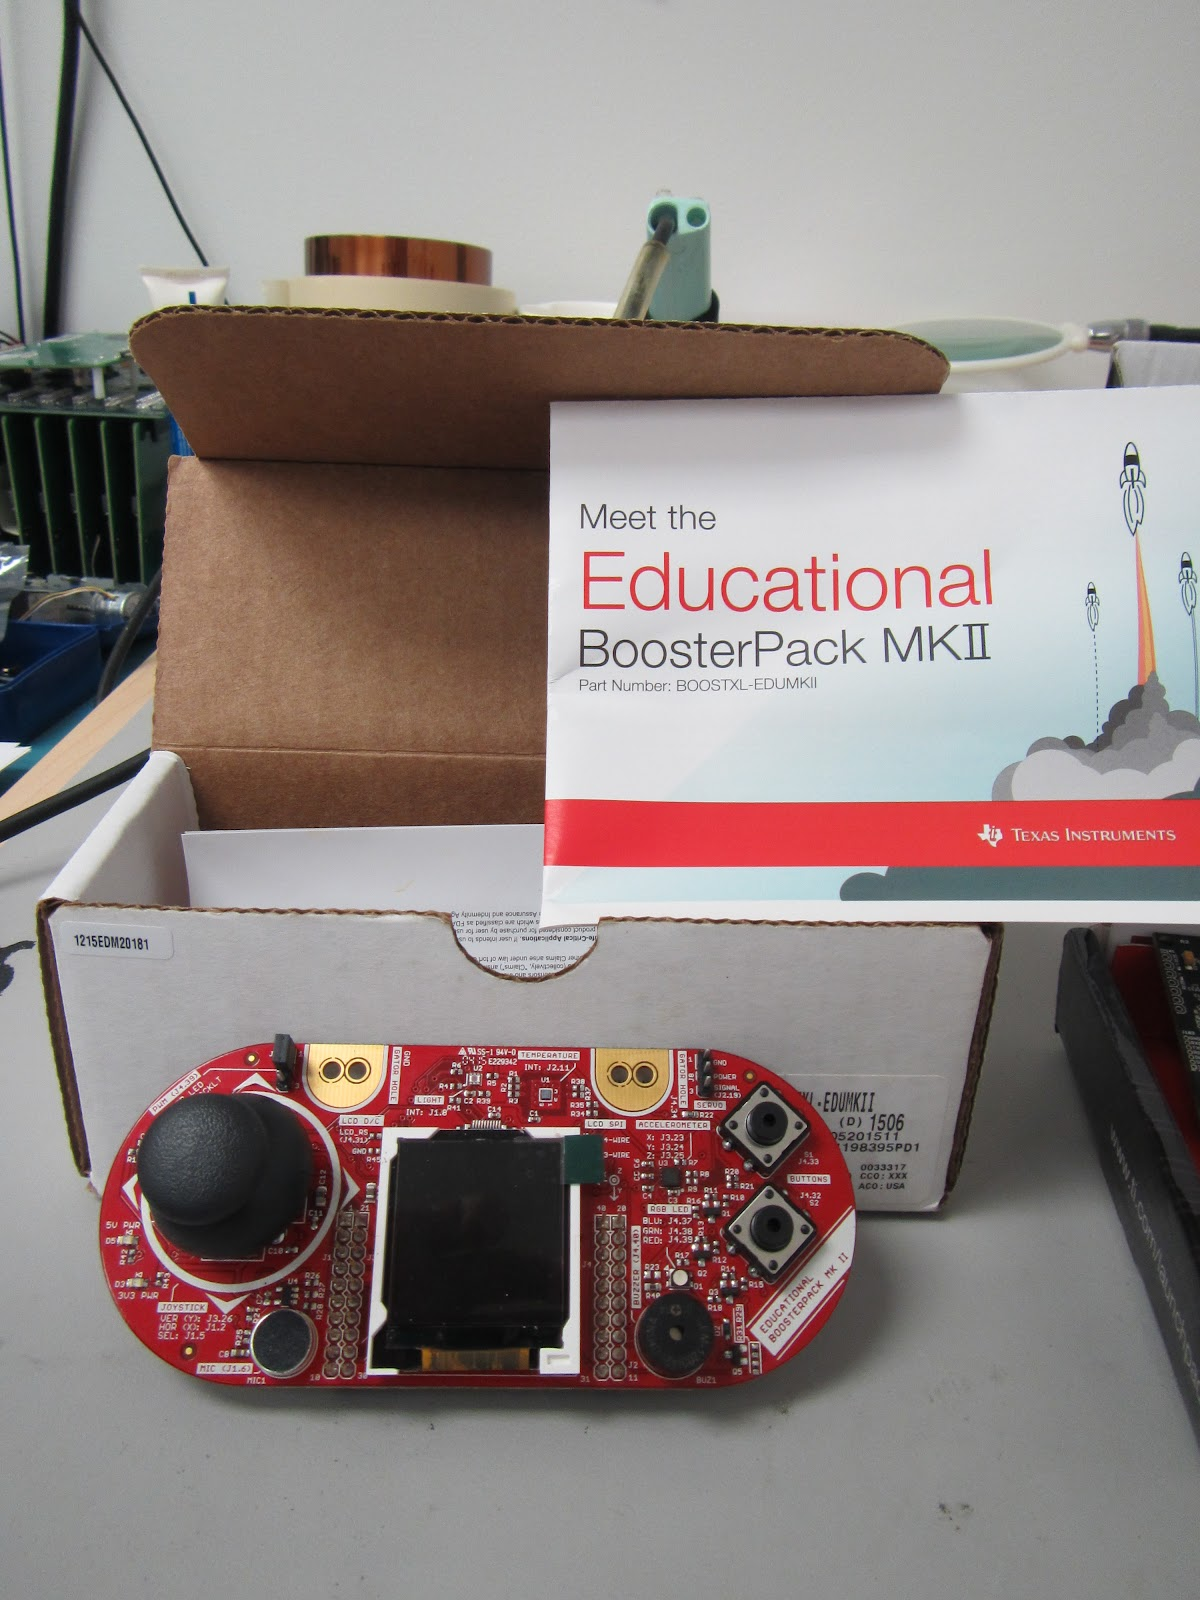 Texas Instruments Educational Boosterpack II -     | element14